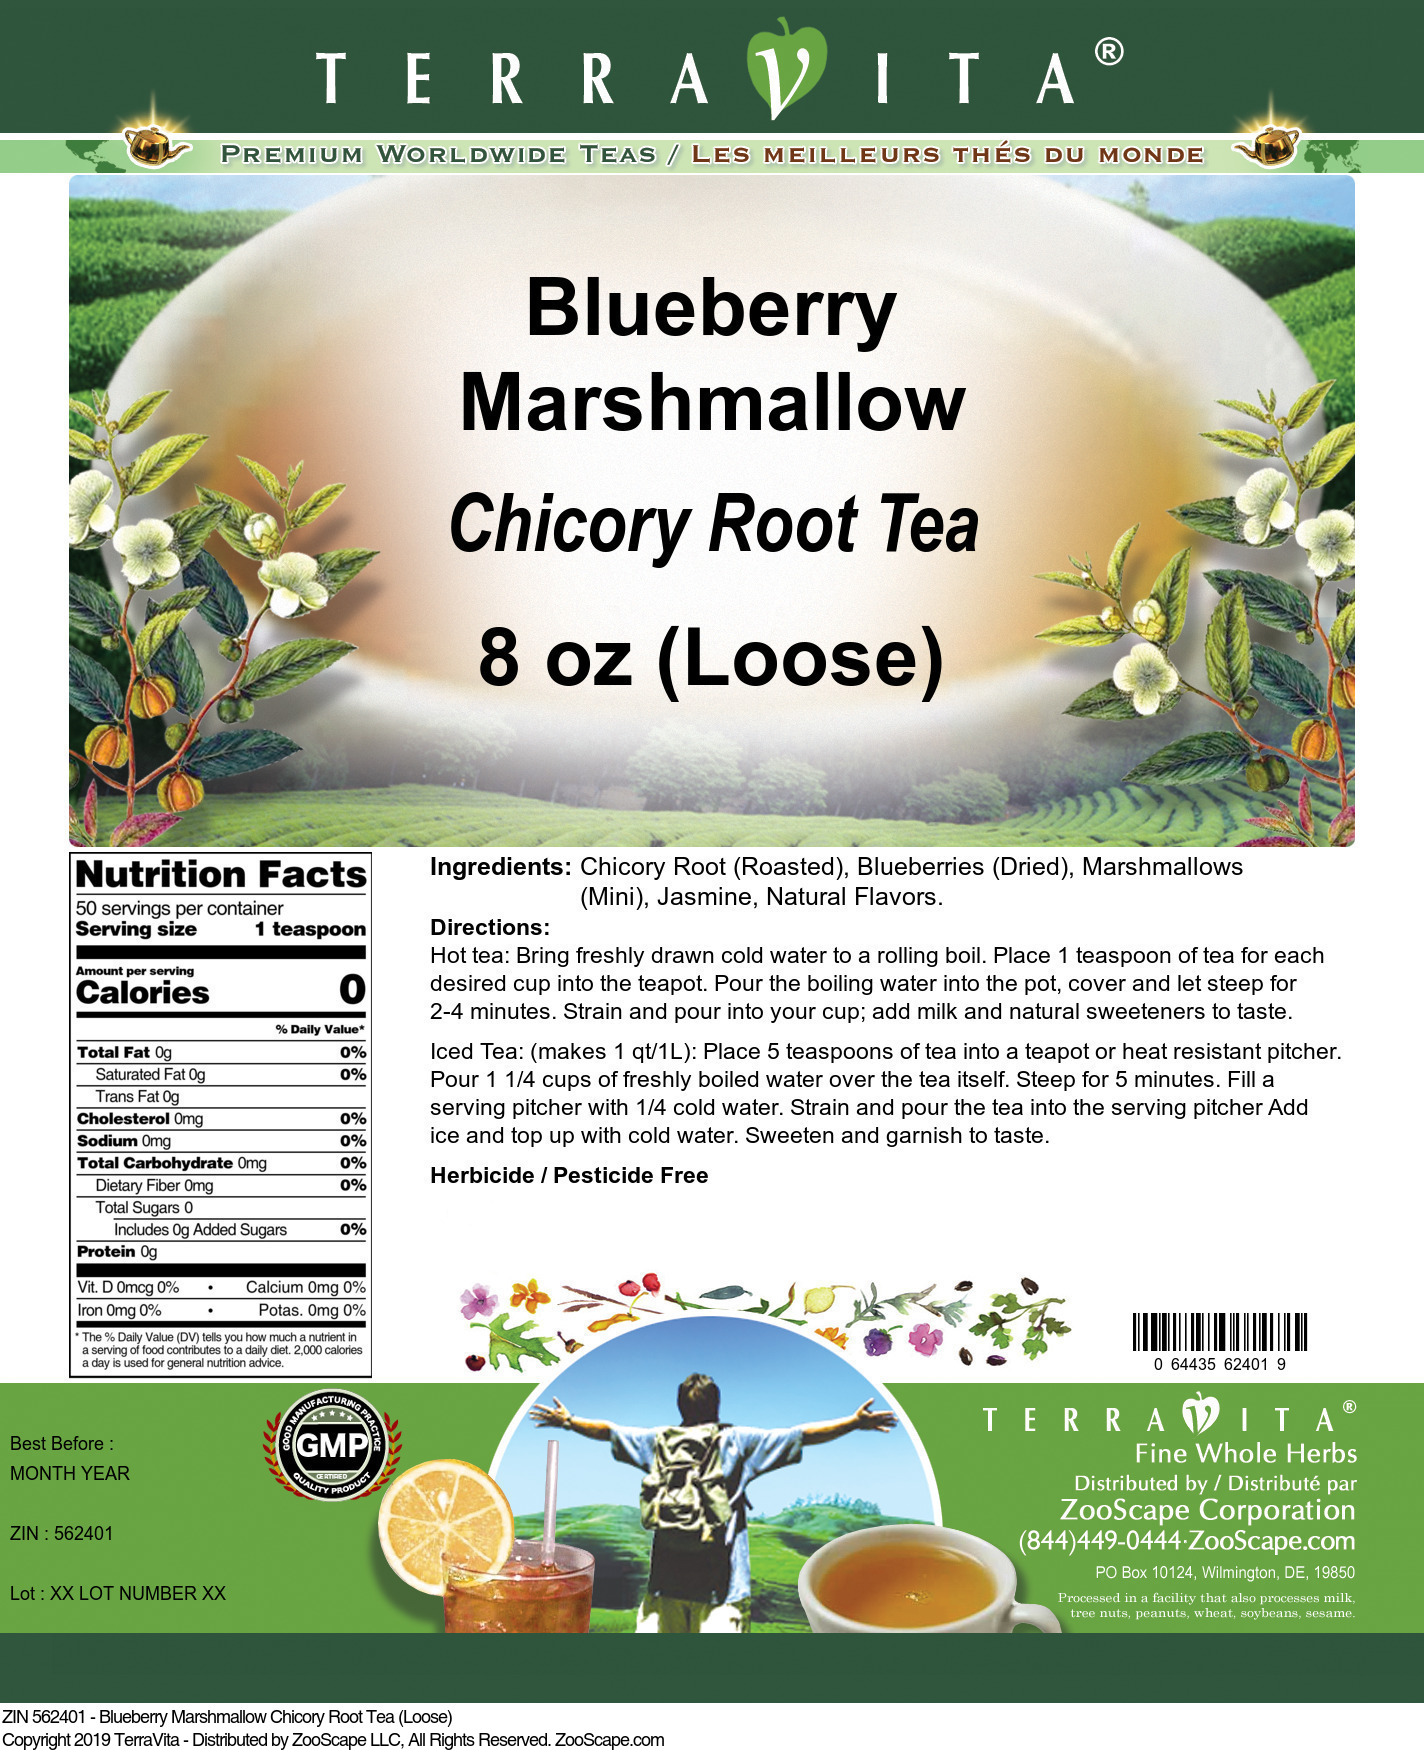 Blueberry Marshmallow Chicory Root Tea (Loose)